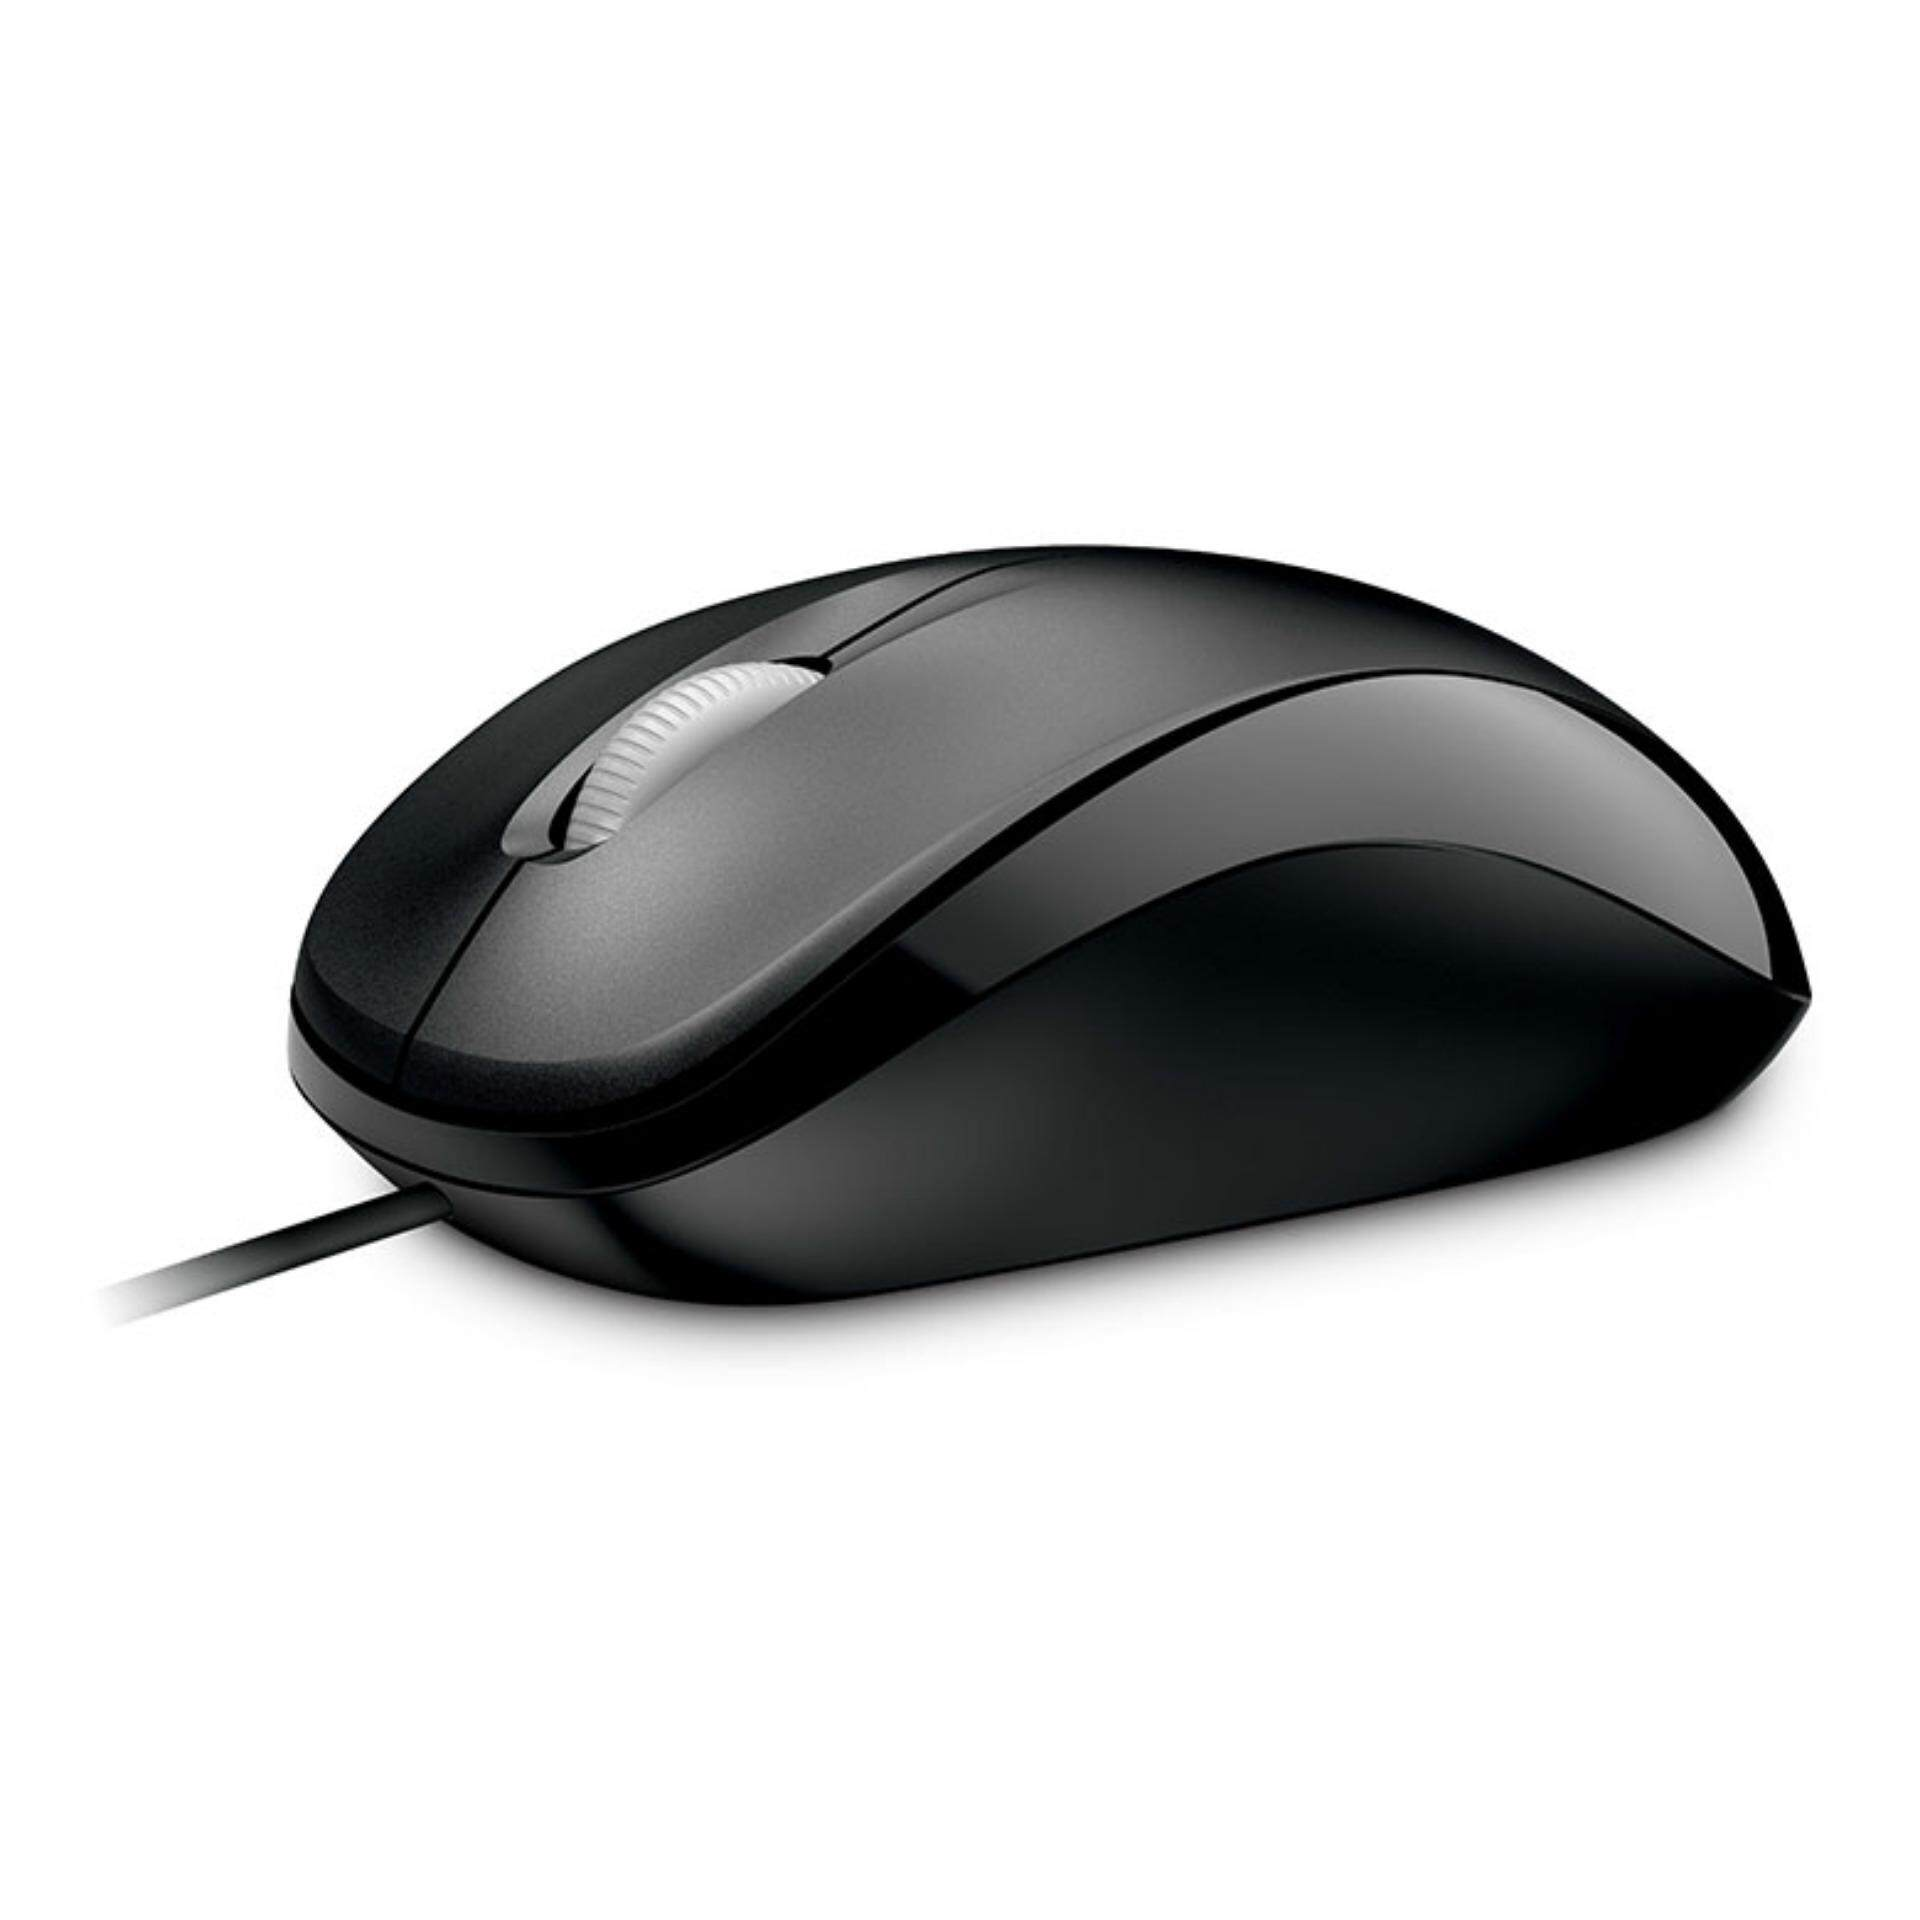 [เมาส์] Microsoft Compact Optical Mouse (สีดำ) McsAcc